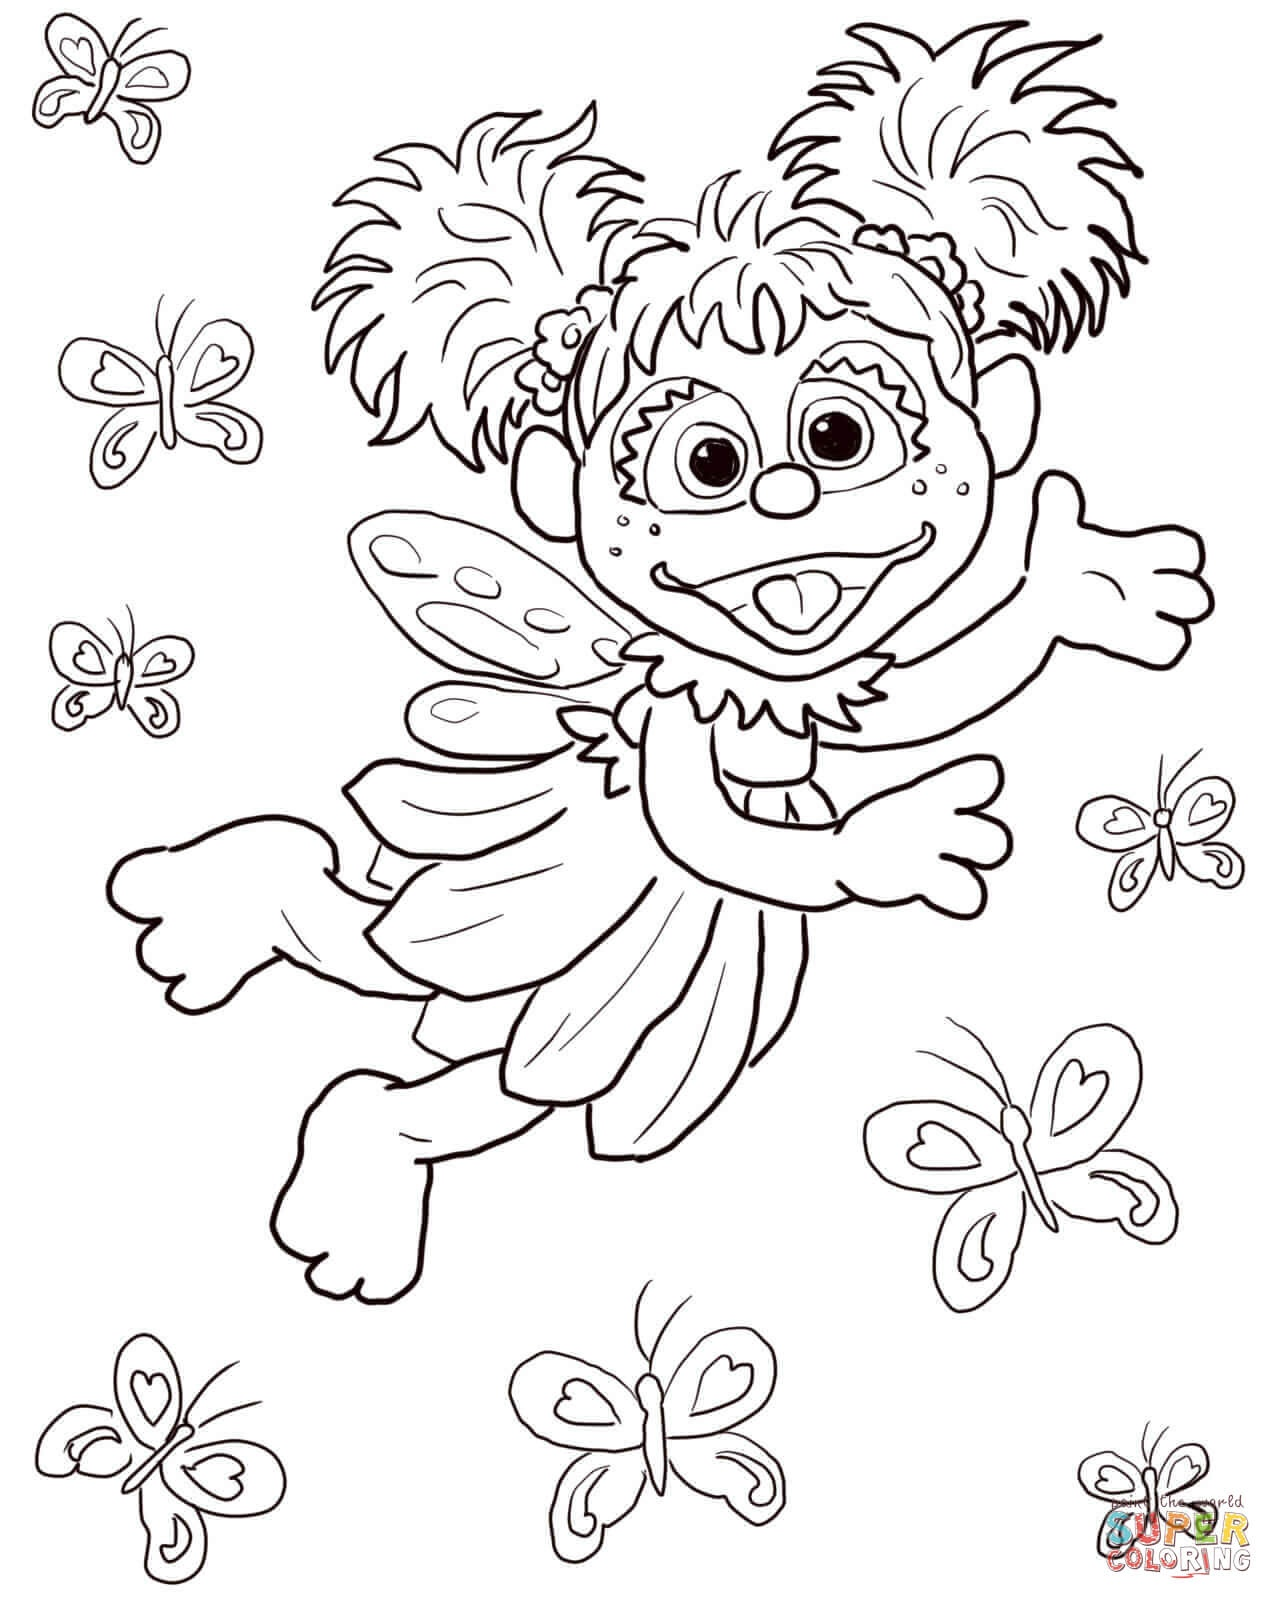 Sesame Street Coloring Pages | Free Coloring Pages - Free Printable Sesame Street Coloring Pages